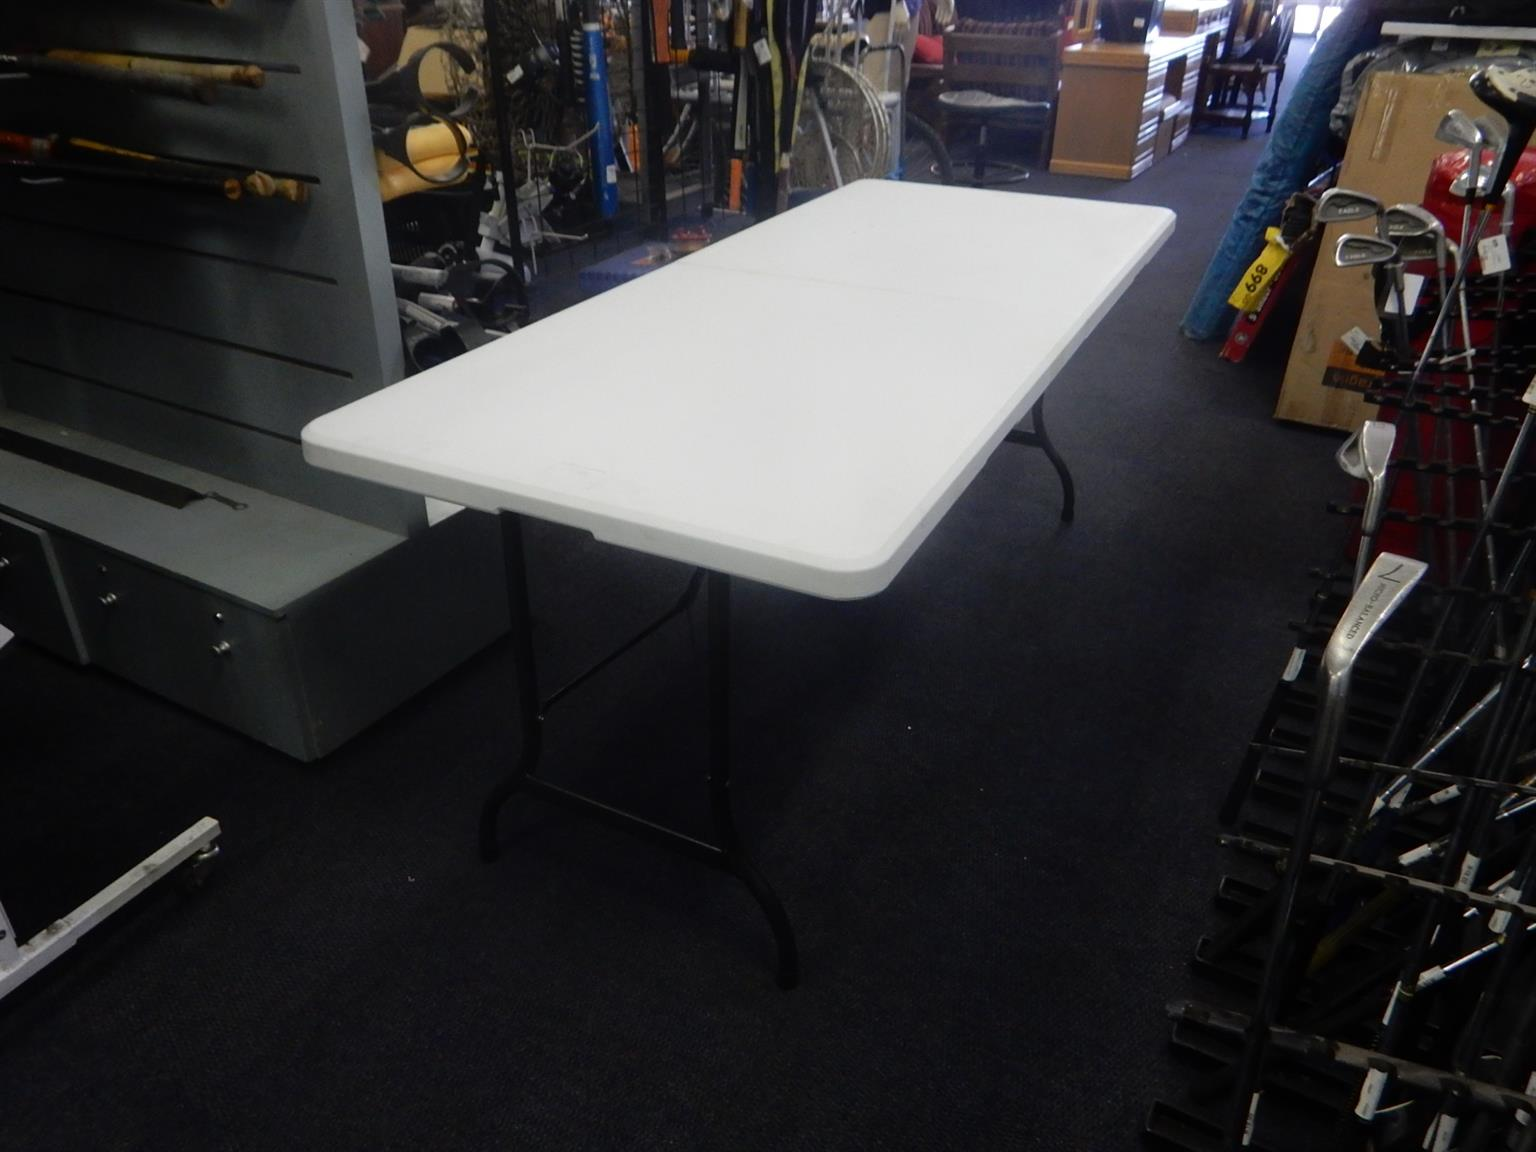 3x Totally Home Plastic Foldable Steel Tables